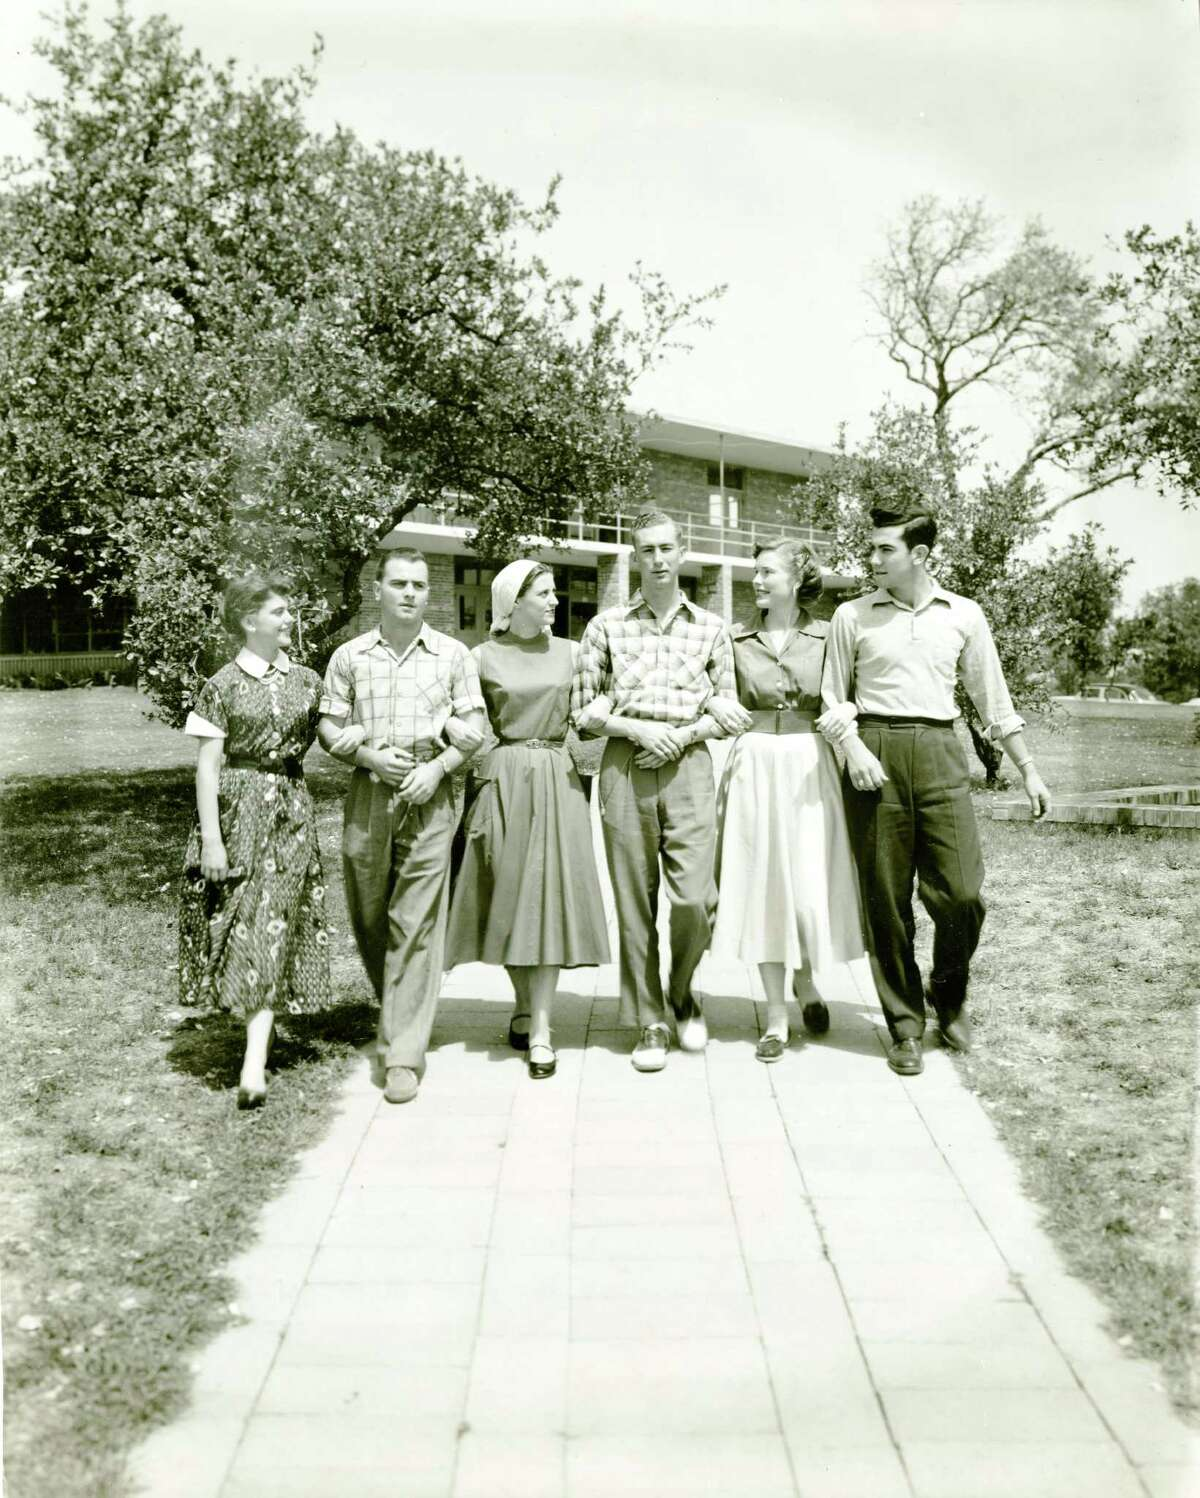 A campus scene circa 1955 with students in the vicinity of Storch Memorial Building at Trinity University.